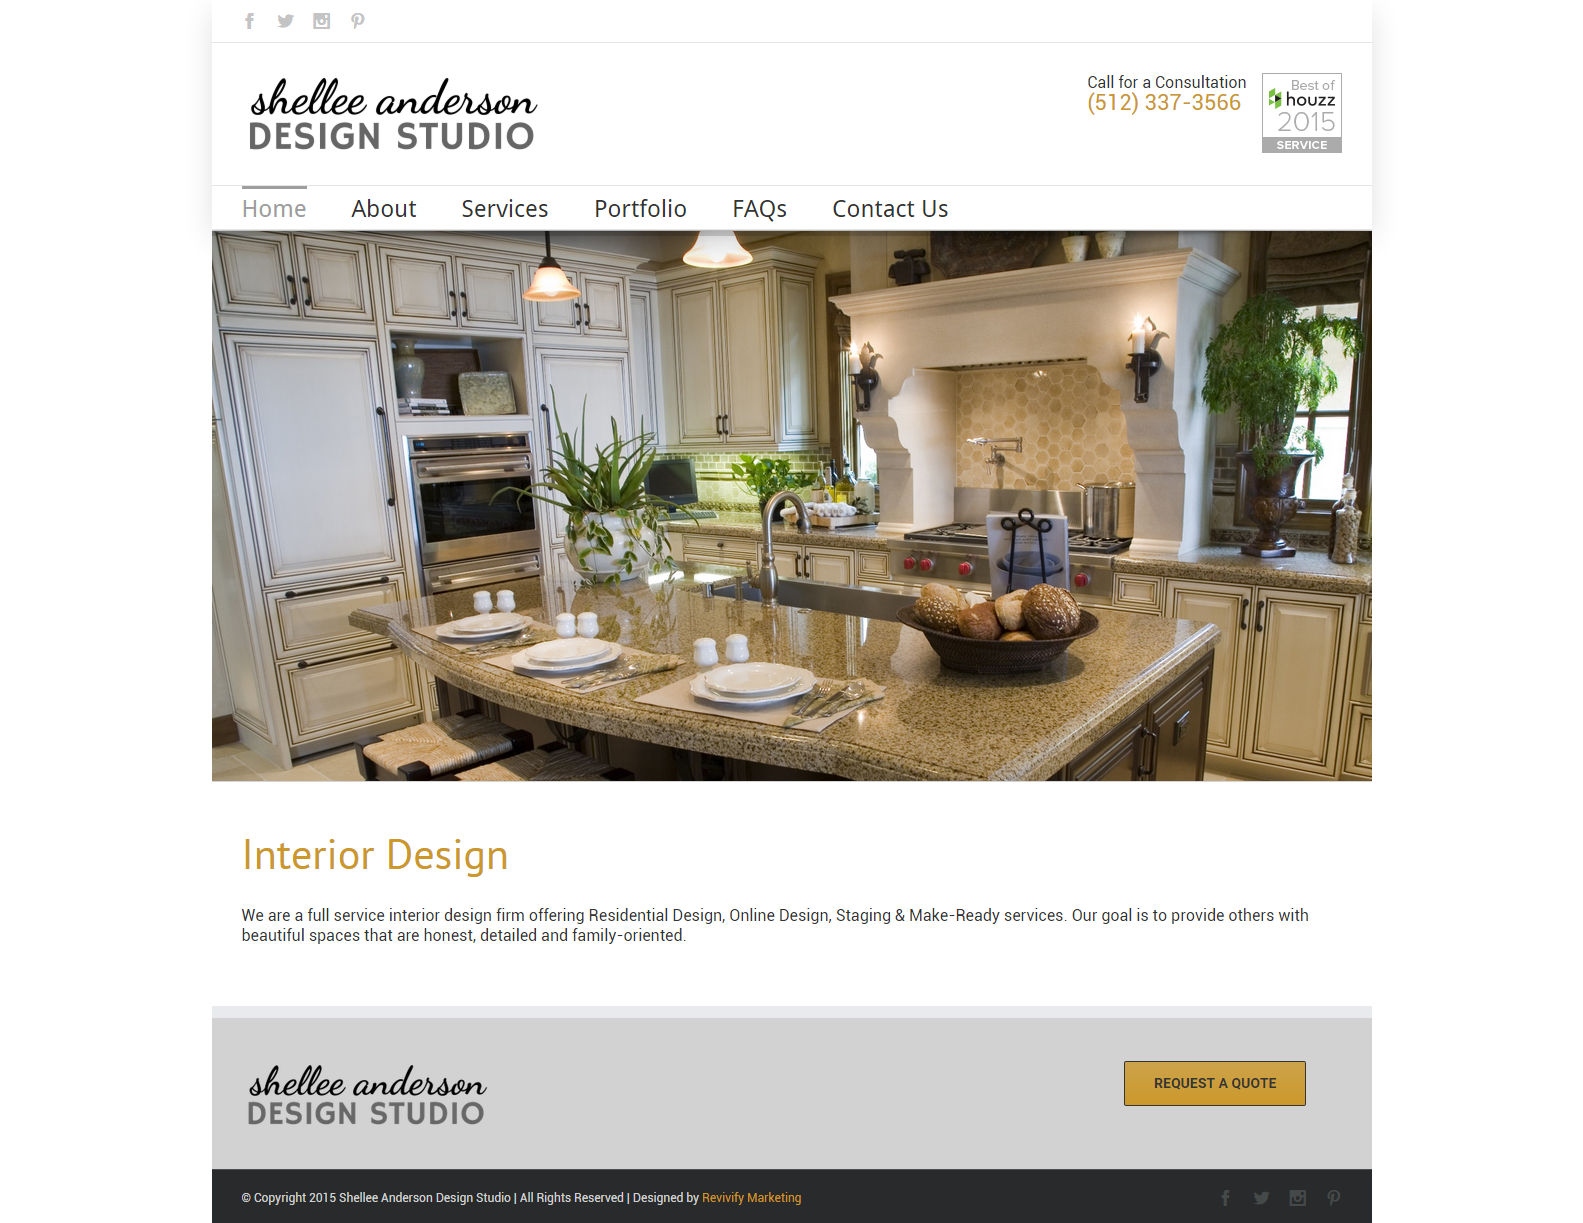 Website Design for Shellee Anderson Design Studio